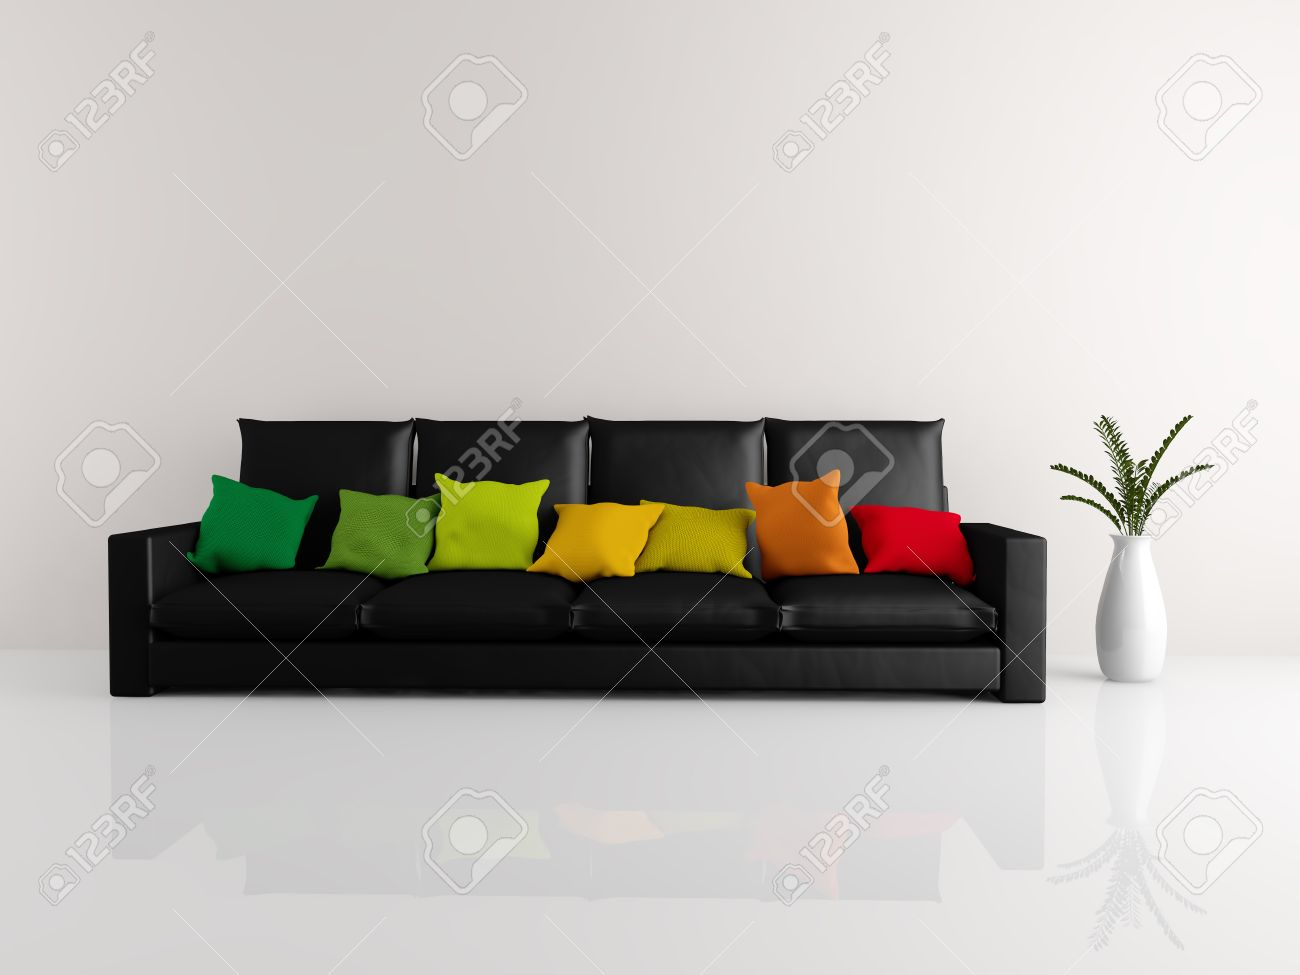 Miraculous A Room With A Minimalist Black Sofa Covered In Colorful Pillows Machost Co Dining Chair Design Ideas Machostcouk